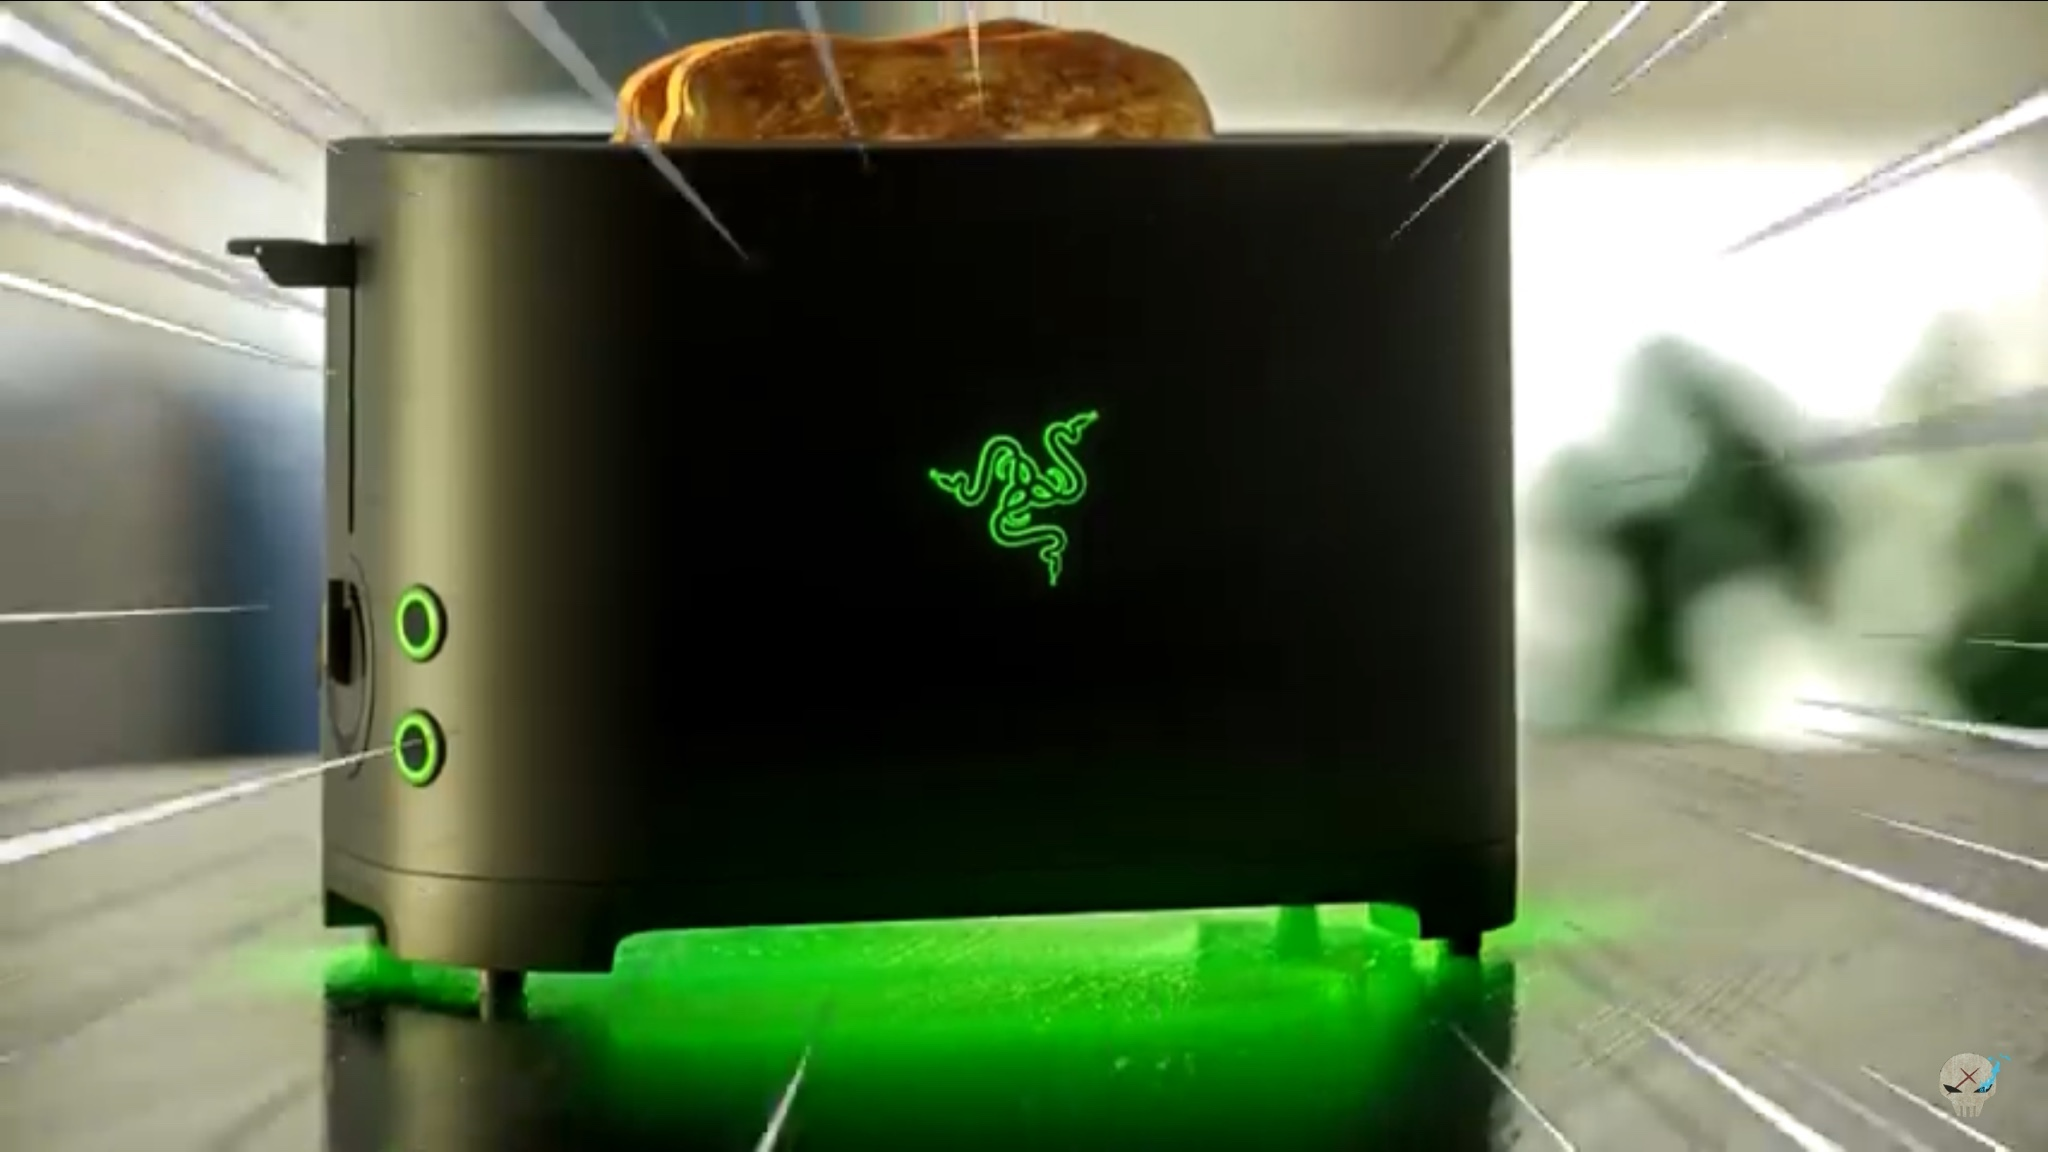 Expensive and most technologically advanced toaster? - meme